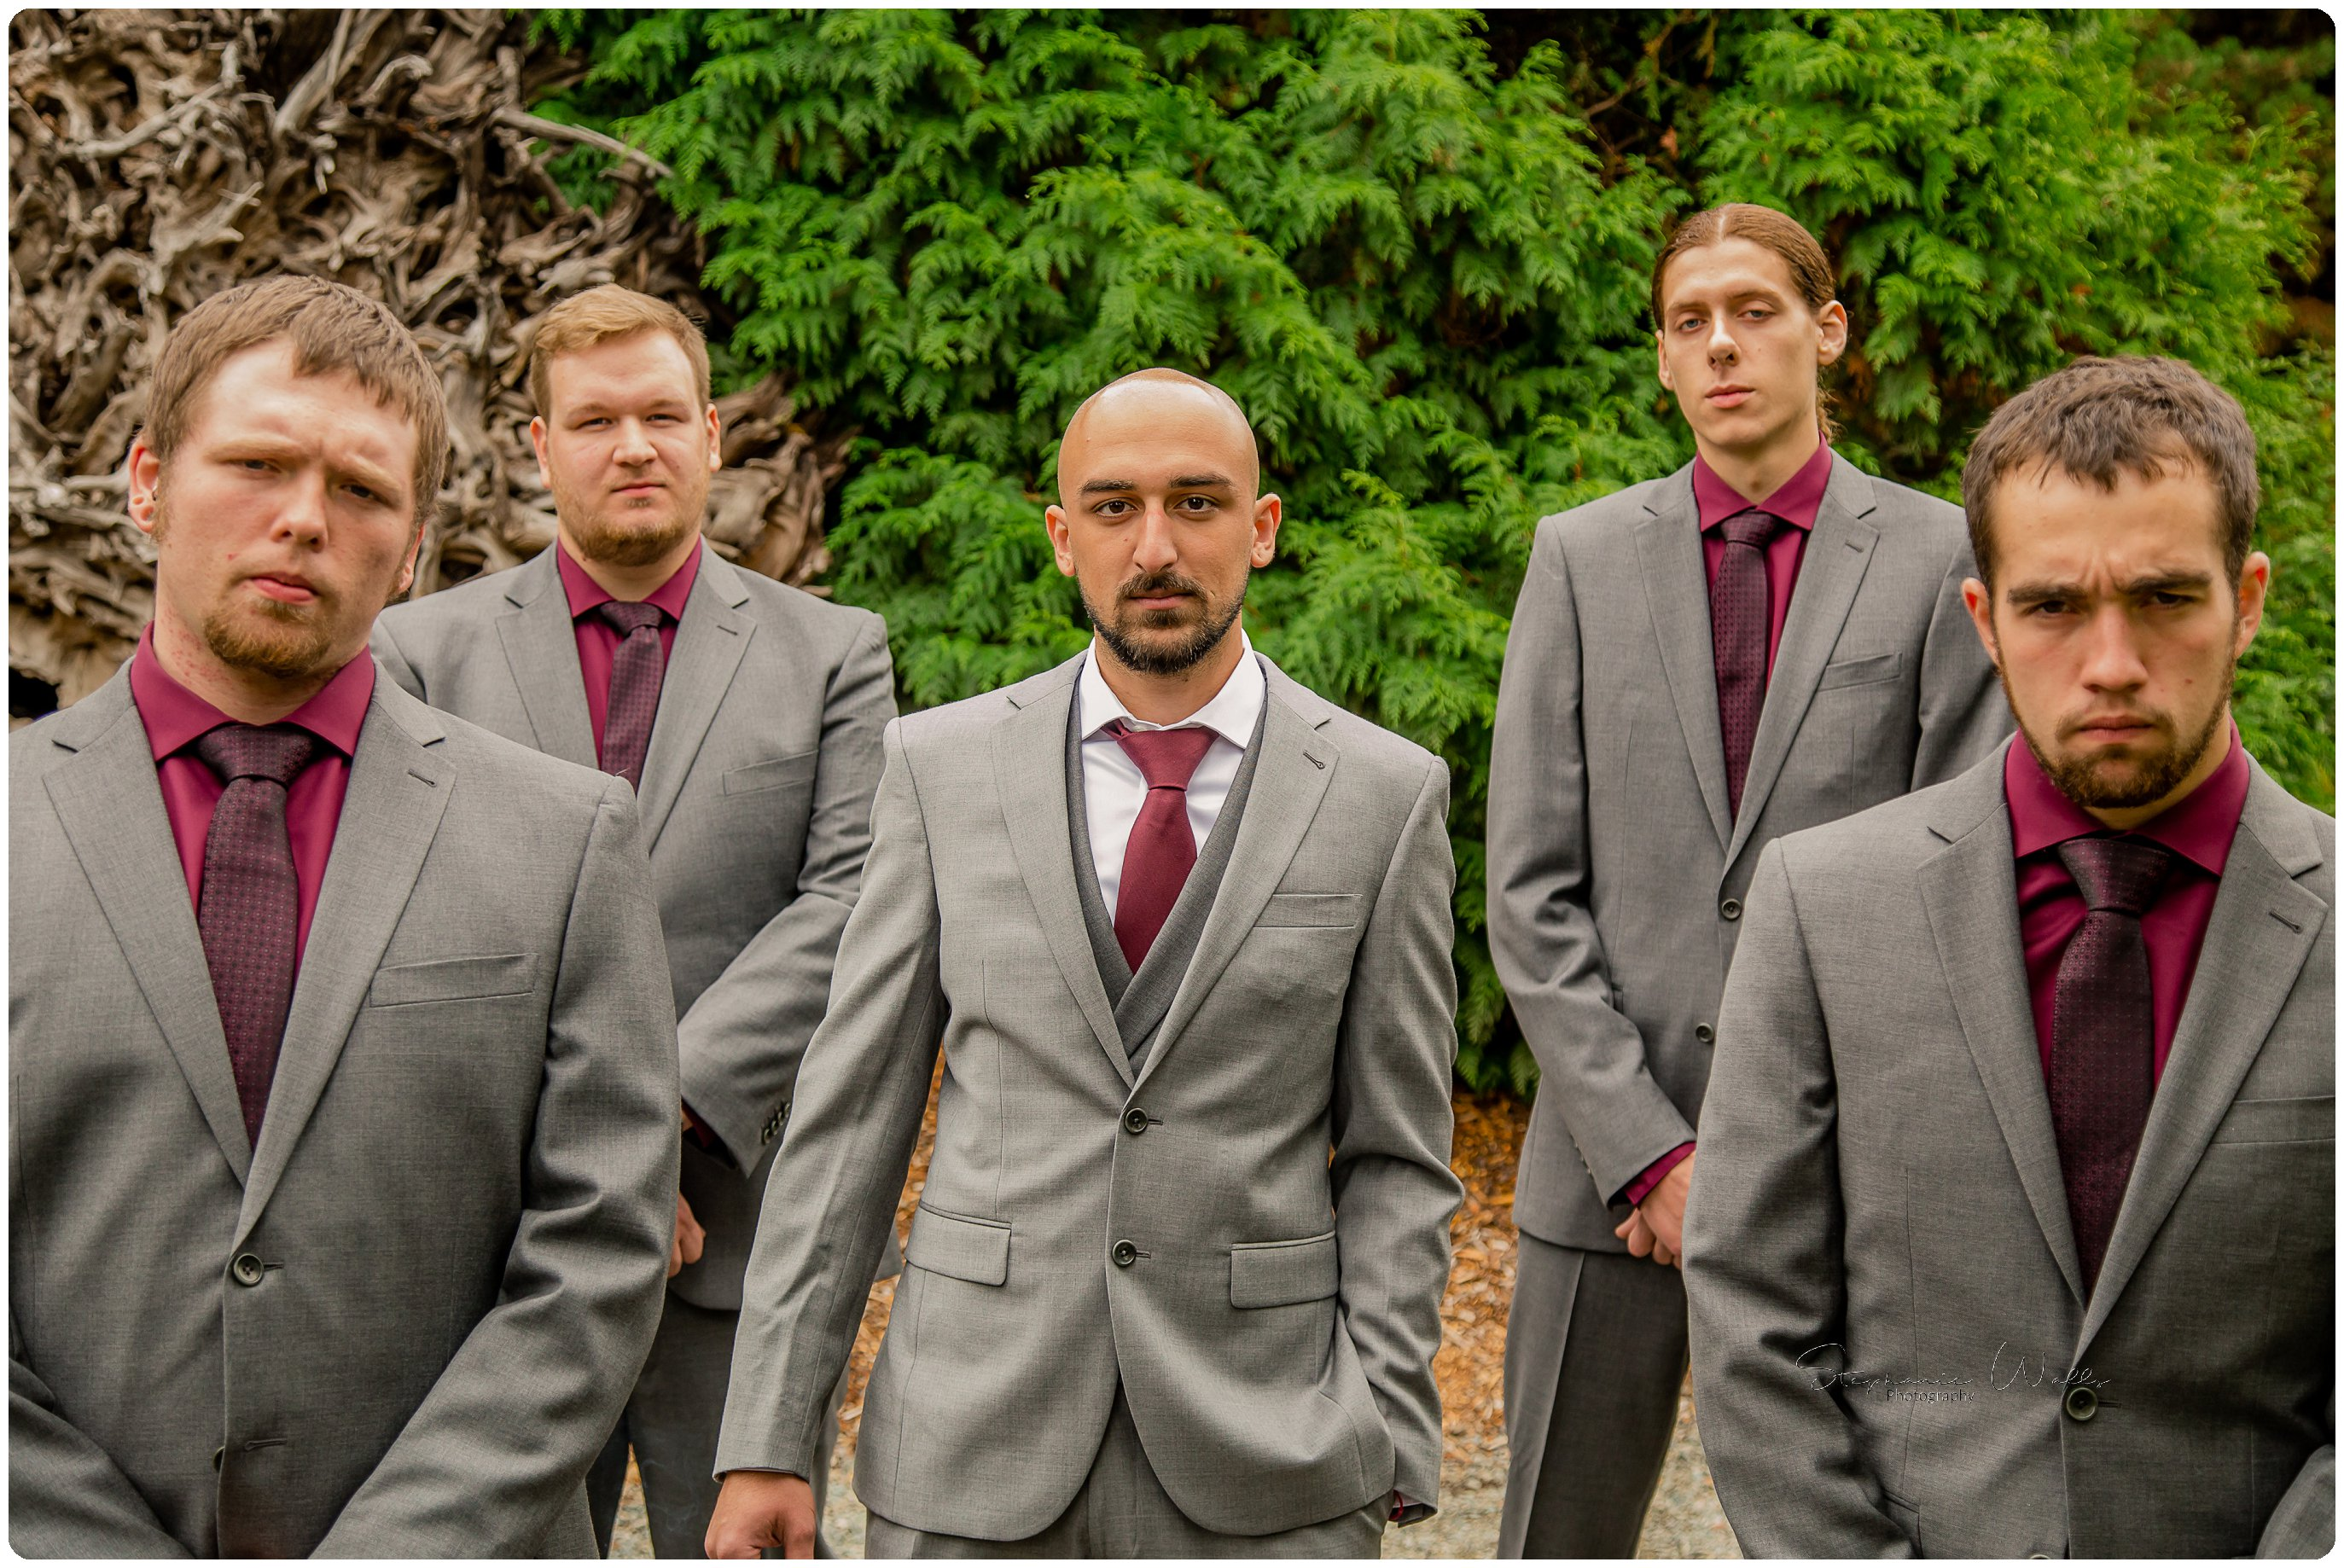 Groom Groomsmen 069 2 Megan & Mo's Day 2 | Willow Lodge Wedding | Woodinville, Wa Wedding Photographer